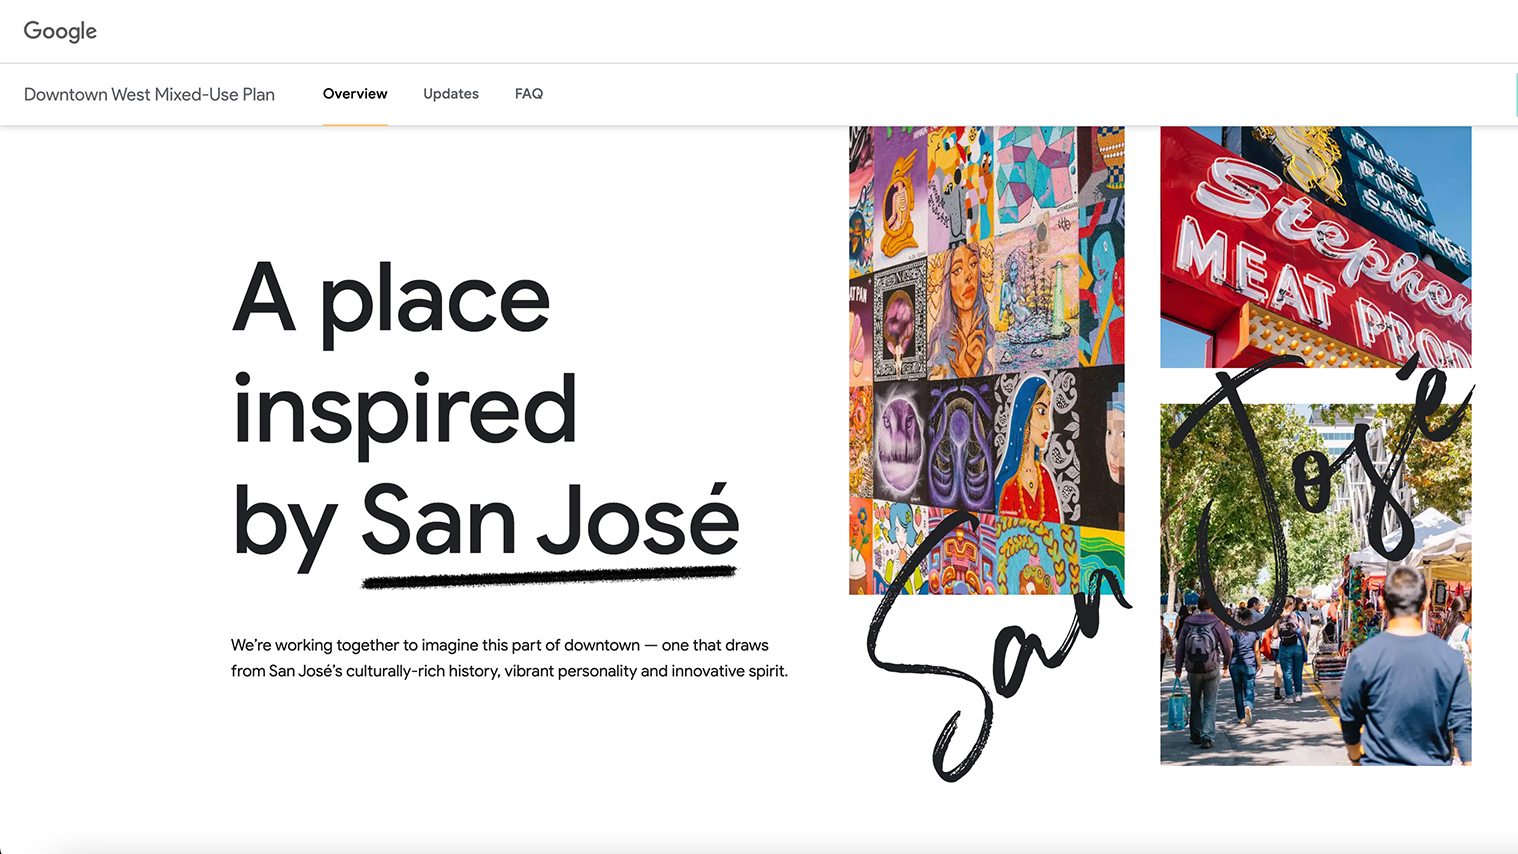 Lessons From Google's Website For Its New Downtown San Jose Development